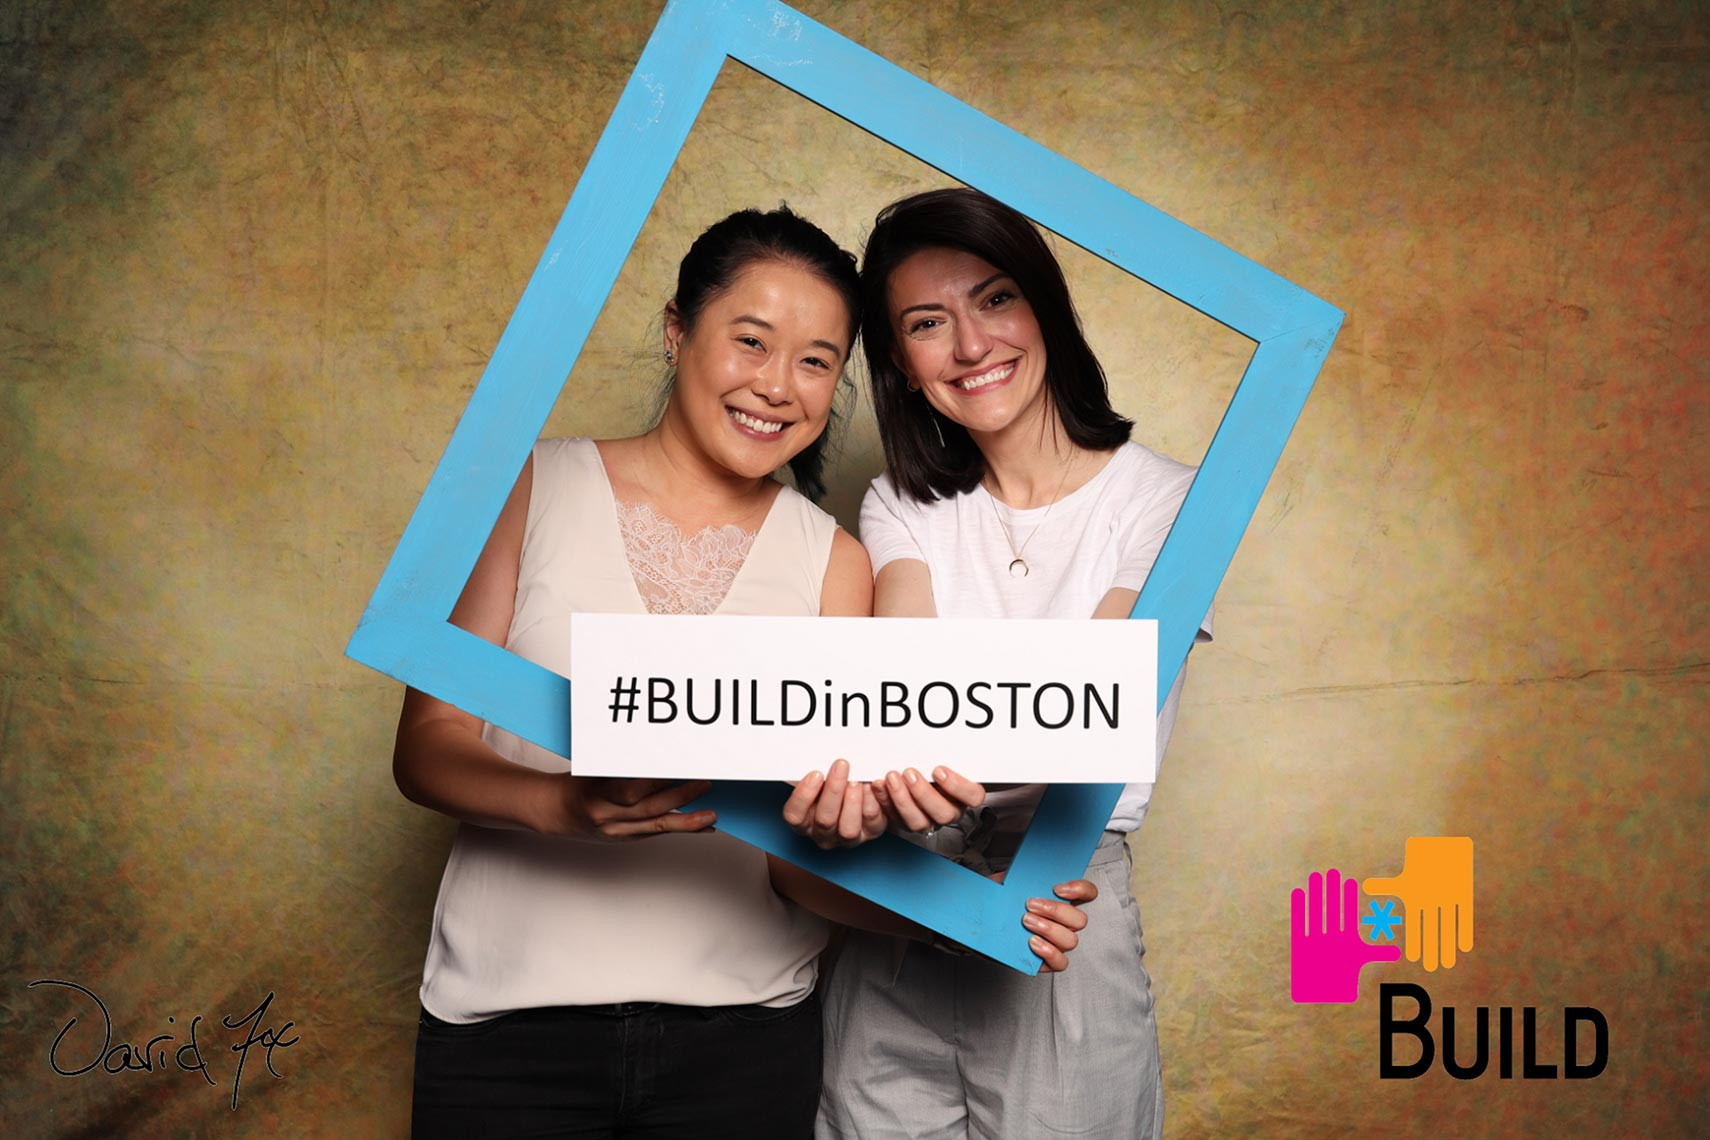 Photobooth fun at BUILD Boston BUILD Fest